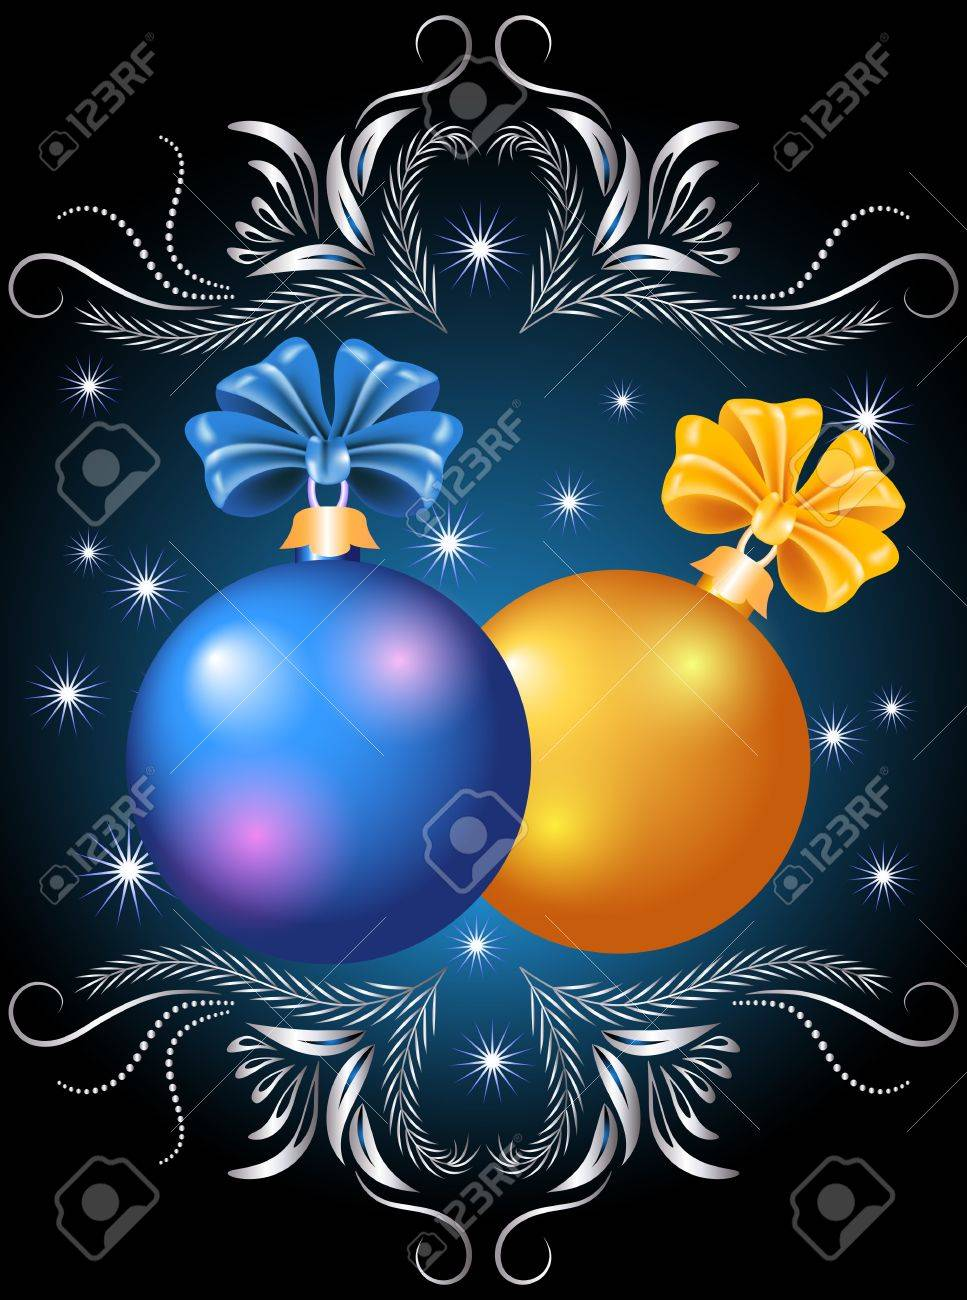 Christmas card with blue and yellow balls Stock Vector - 11149005